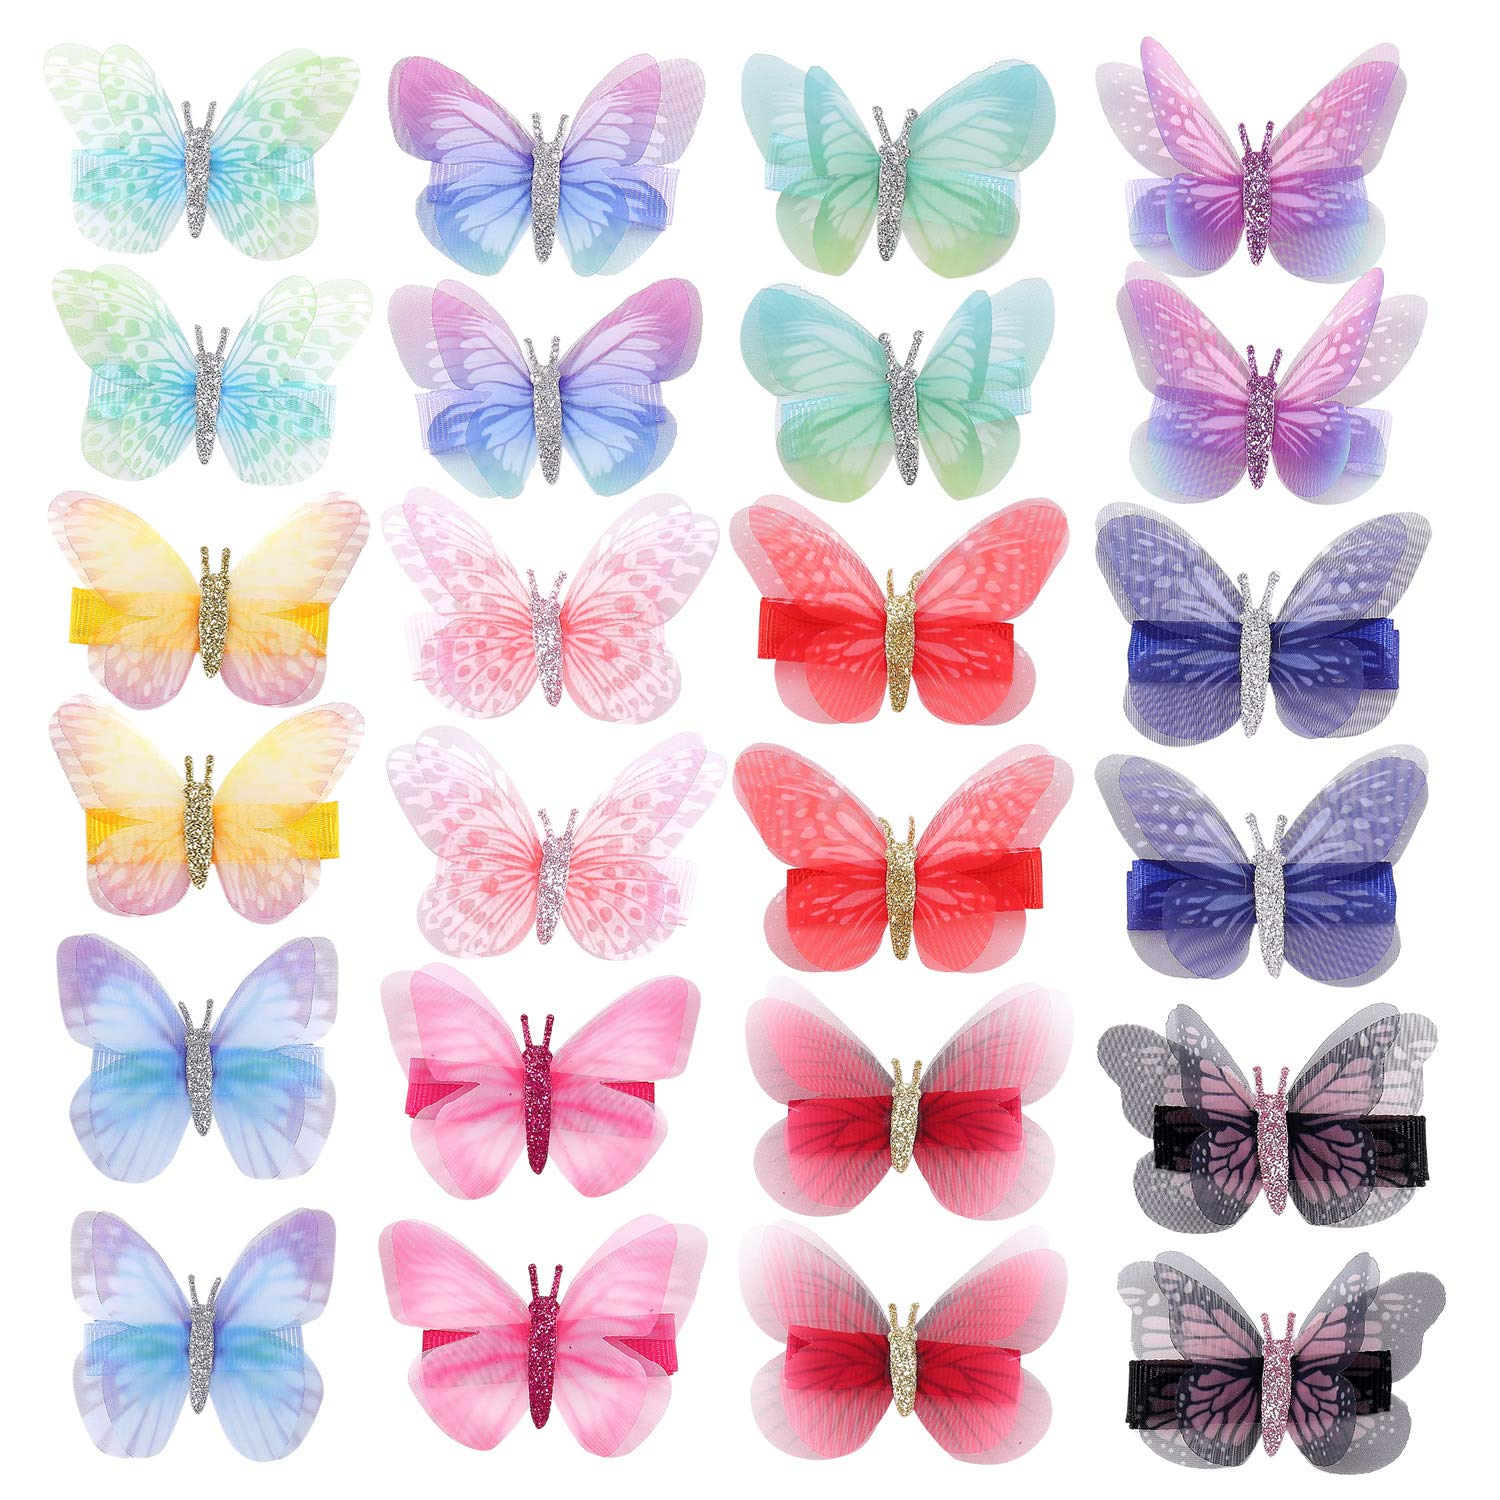 inSowni 24 Pack Ranking TOP7 New popularity 12 Pairs Butterfly Alligator Colorful Realistic